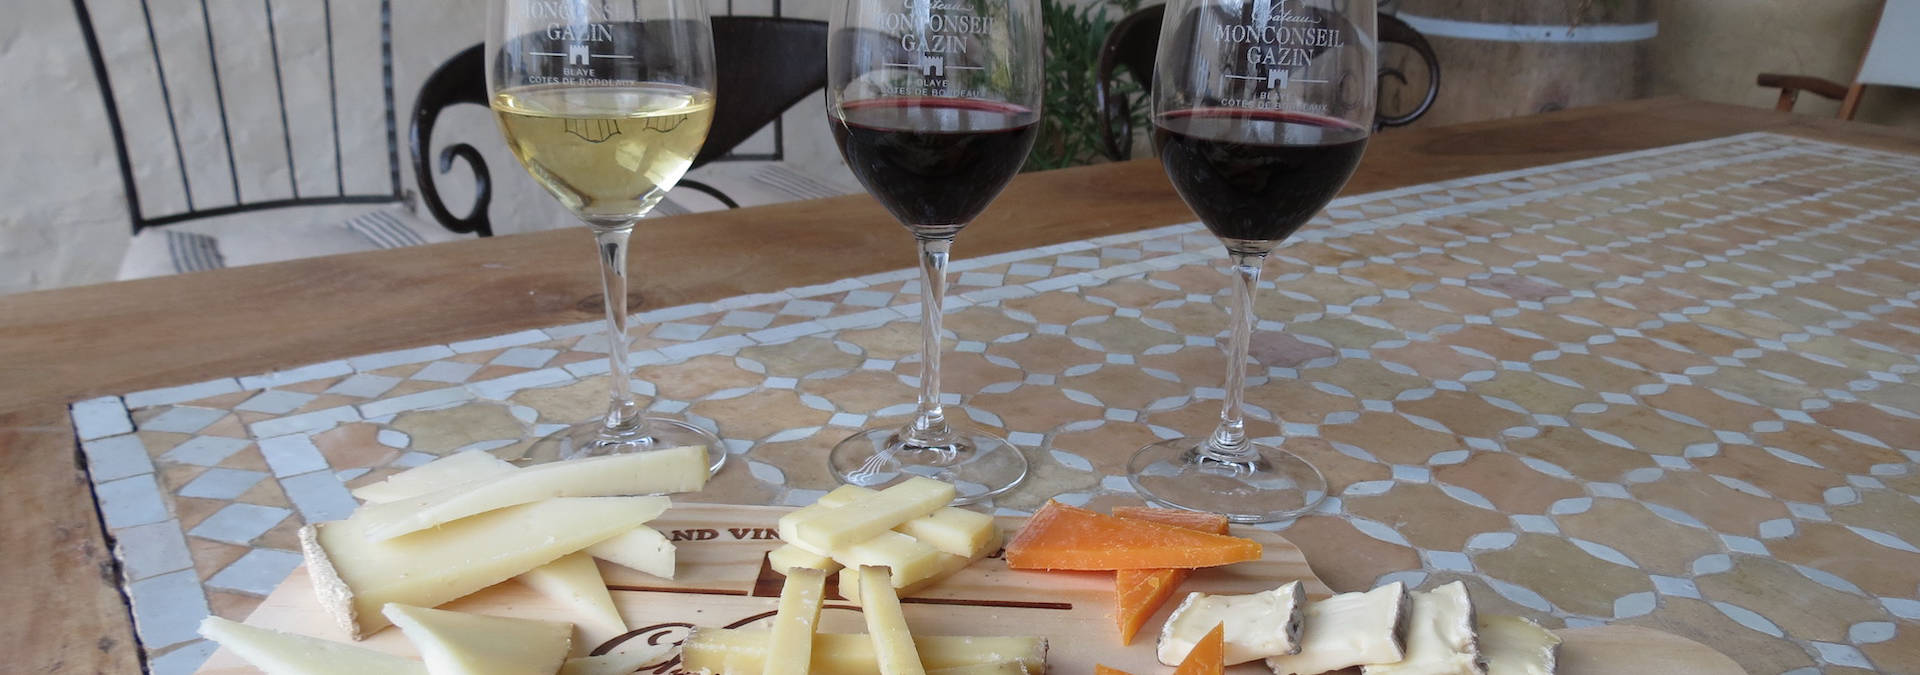 Atelier Vins-Fromages